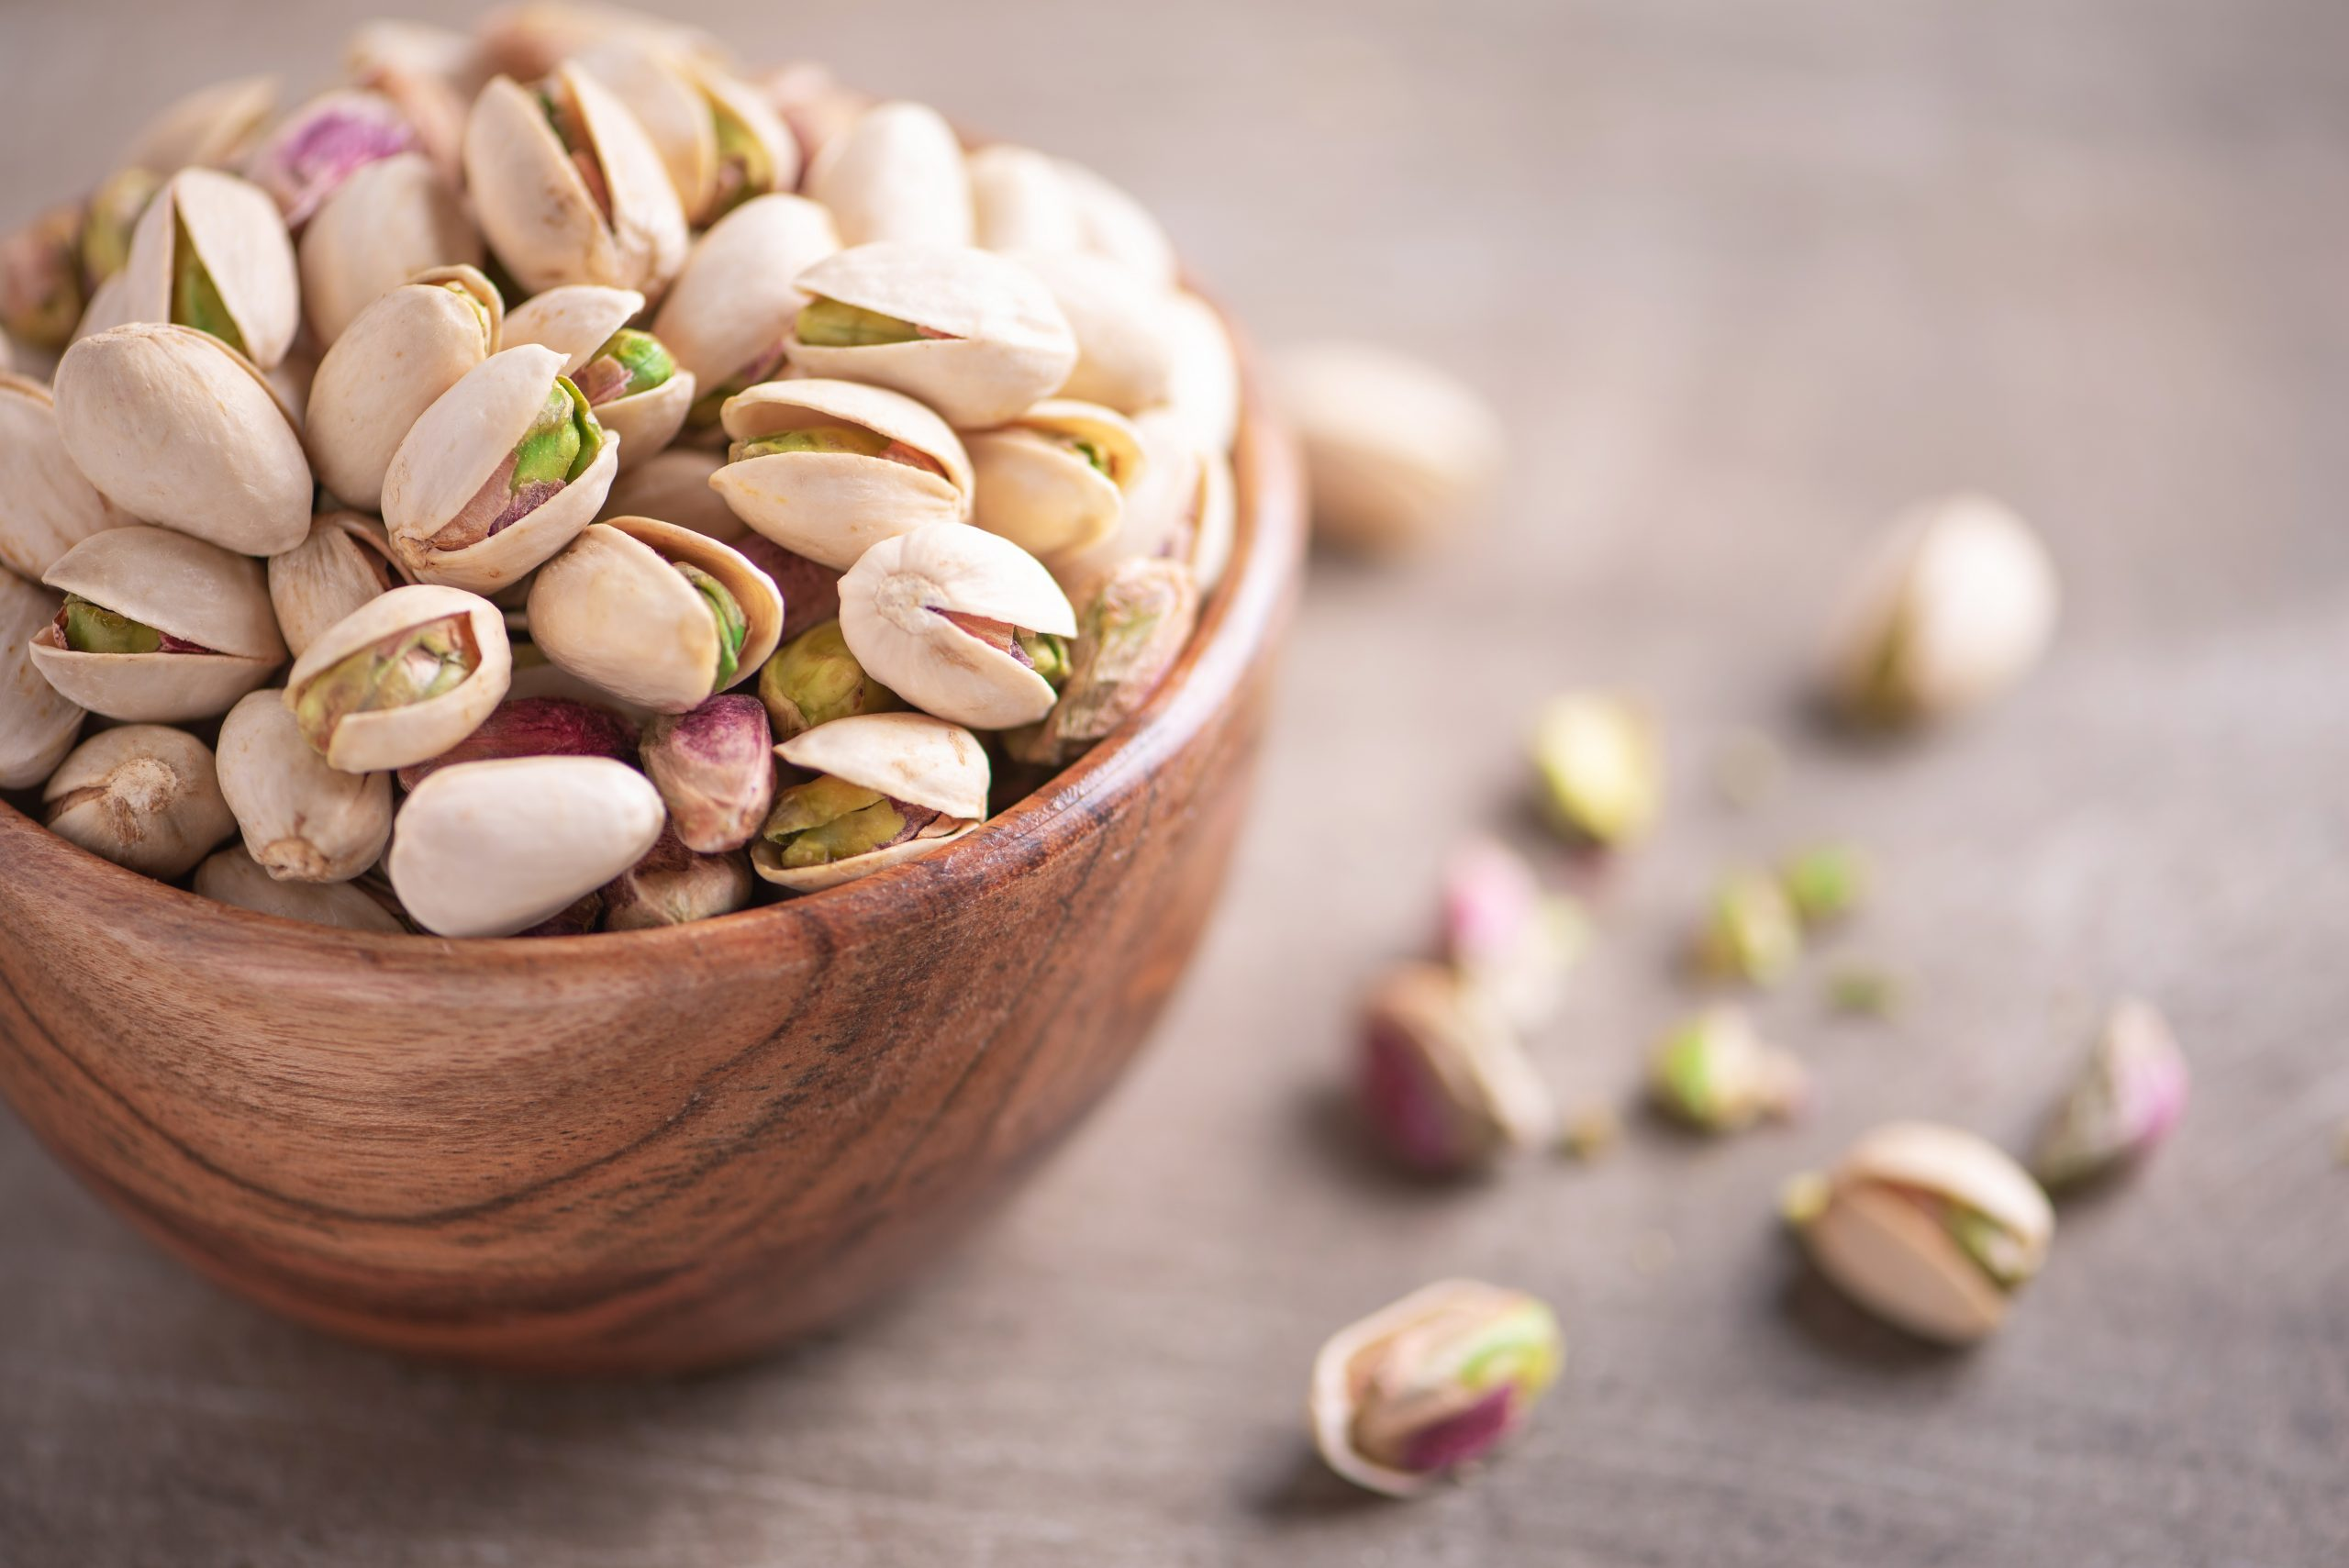 Green pistachio nuts in wooden bowl on wood textured background. Copy space. Superfood, vegan, vegetarian food concept. Macro of pistachio nut texture, selective focus. Healthy snack.